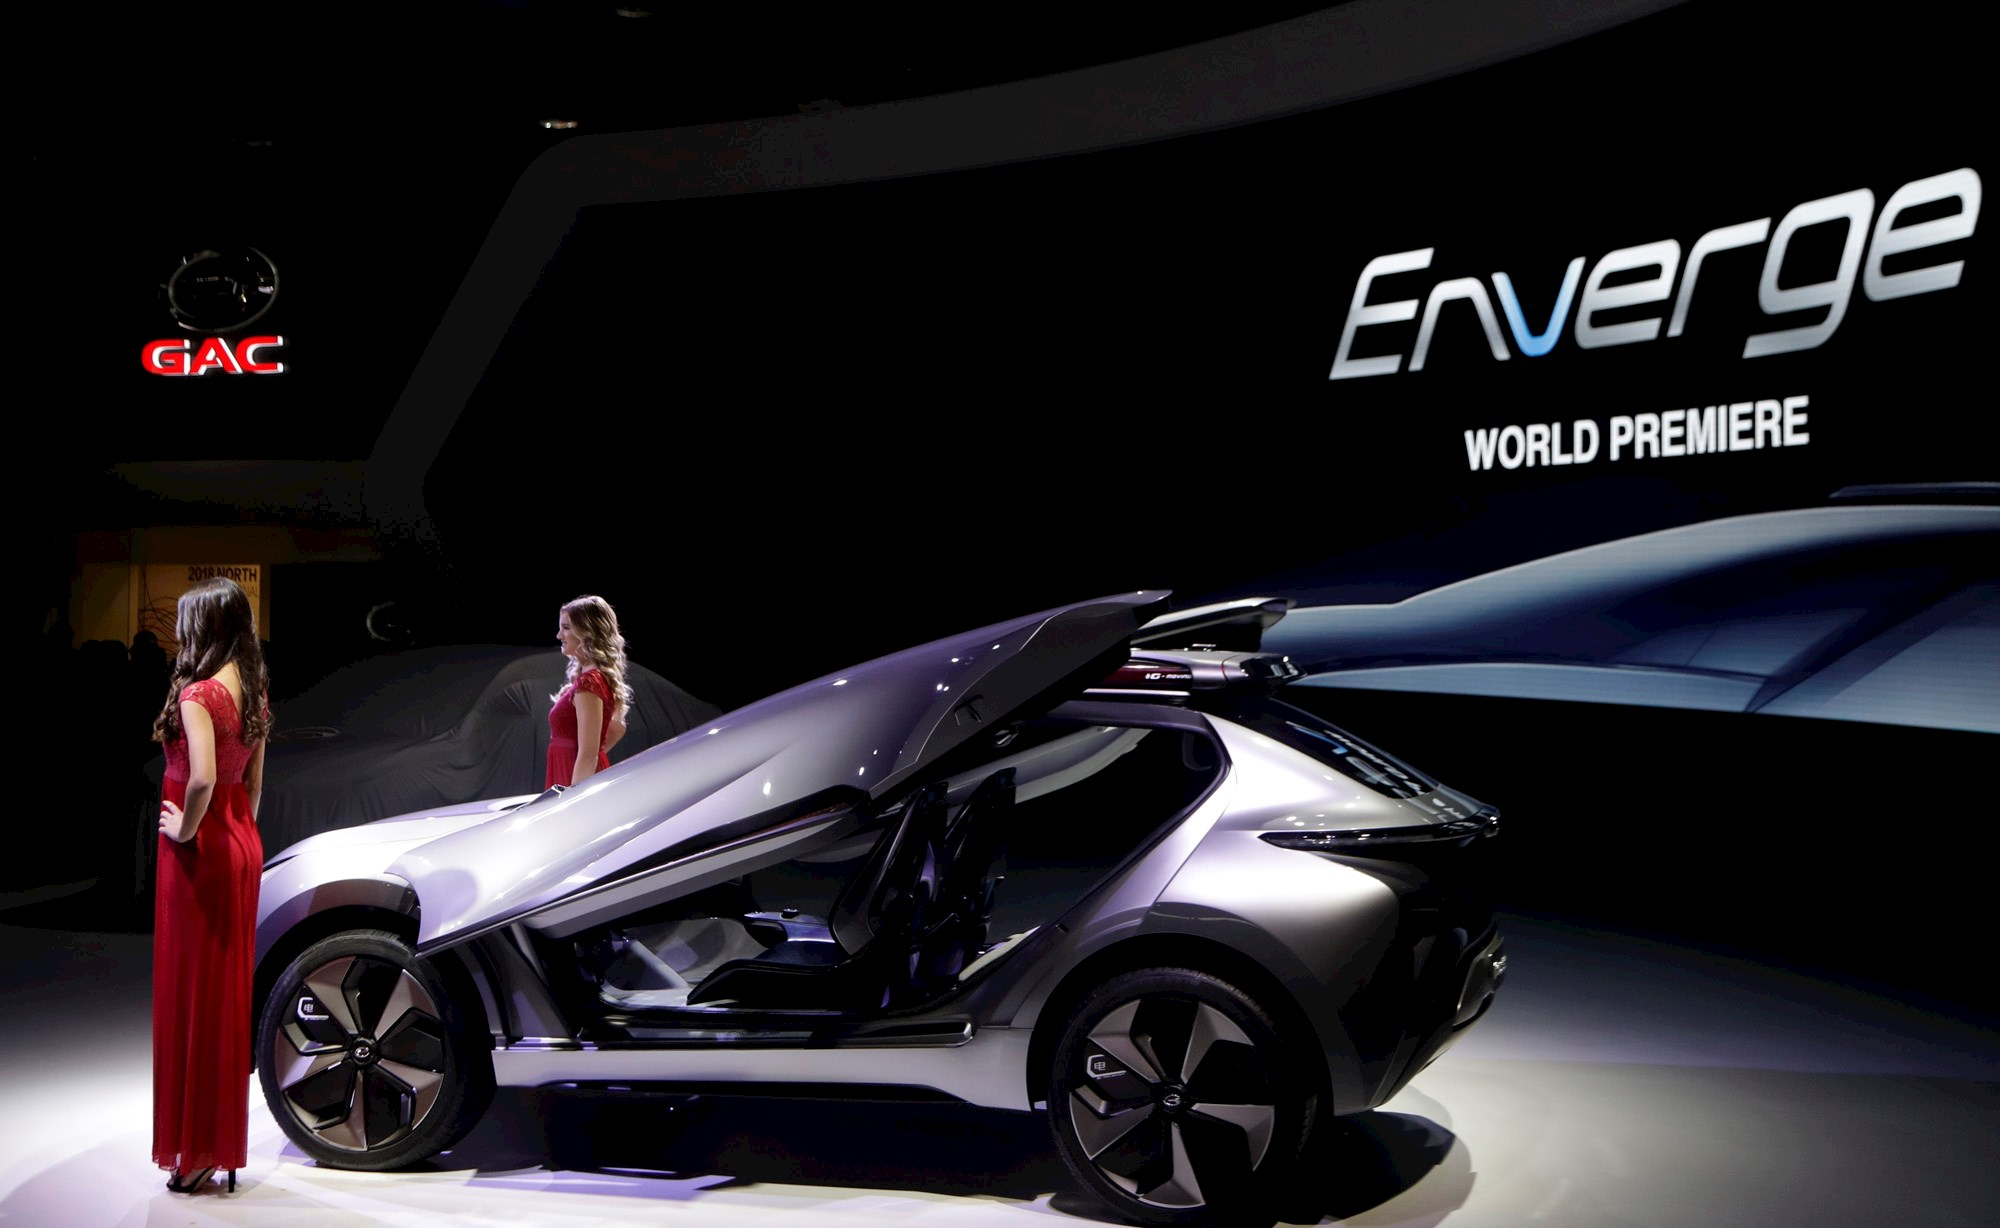 Enverge. GAC's slick electric concept car